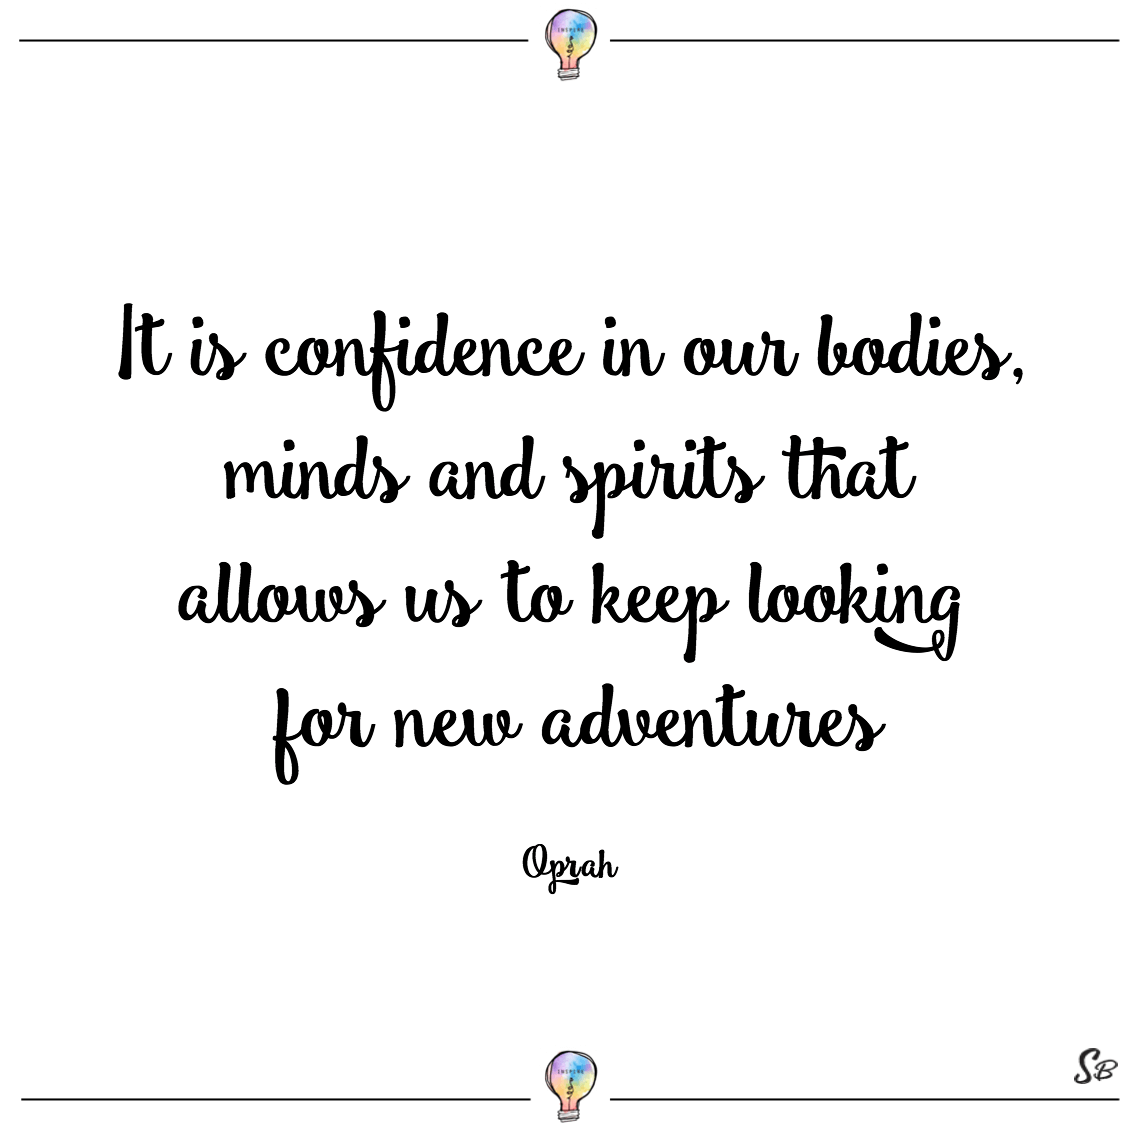 It is confidence in our bodies, minds and spirits that allows us to keep looking for new adventures oprah